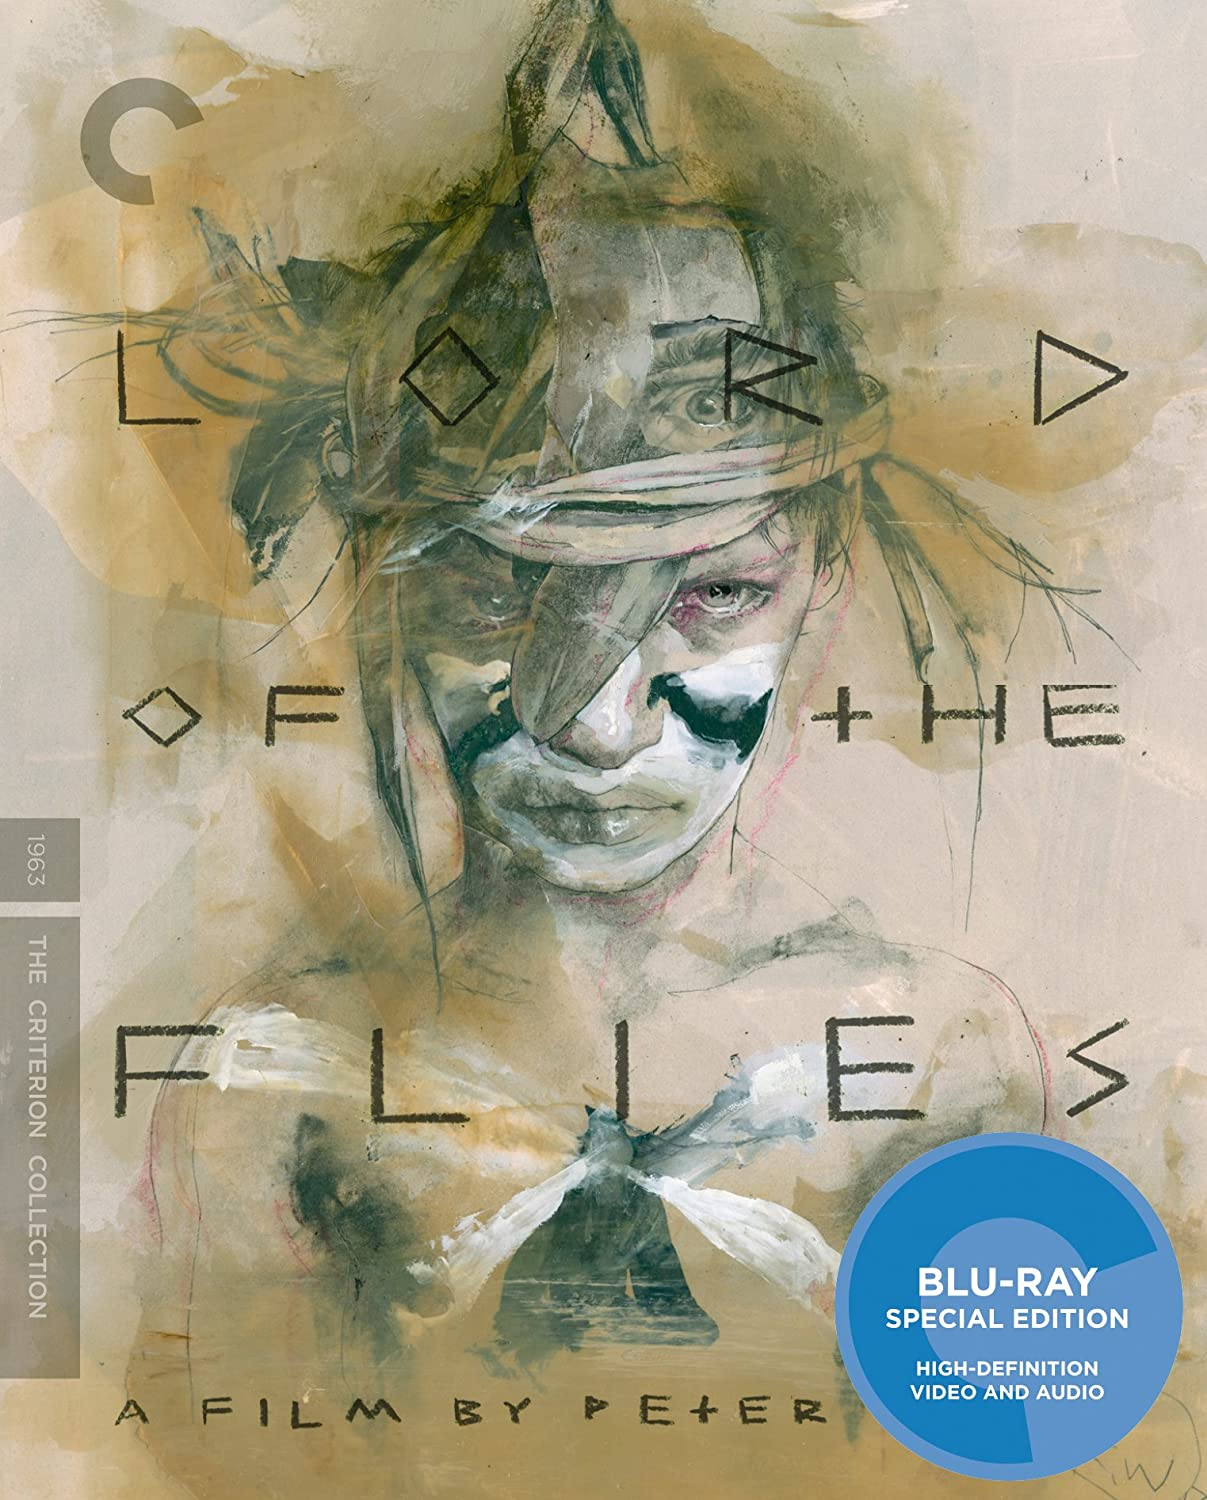 lord of the flies the criterion collection blu ray ca  lord of the flies the criterion collection blu ray ca james aubrey tom chapin hugh edwards roger elwin tom gaman roger allan david brunjes